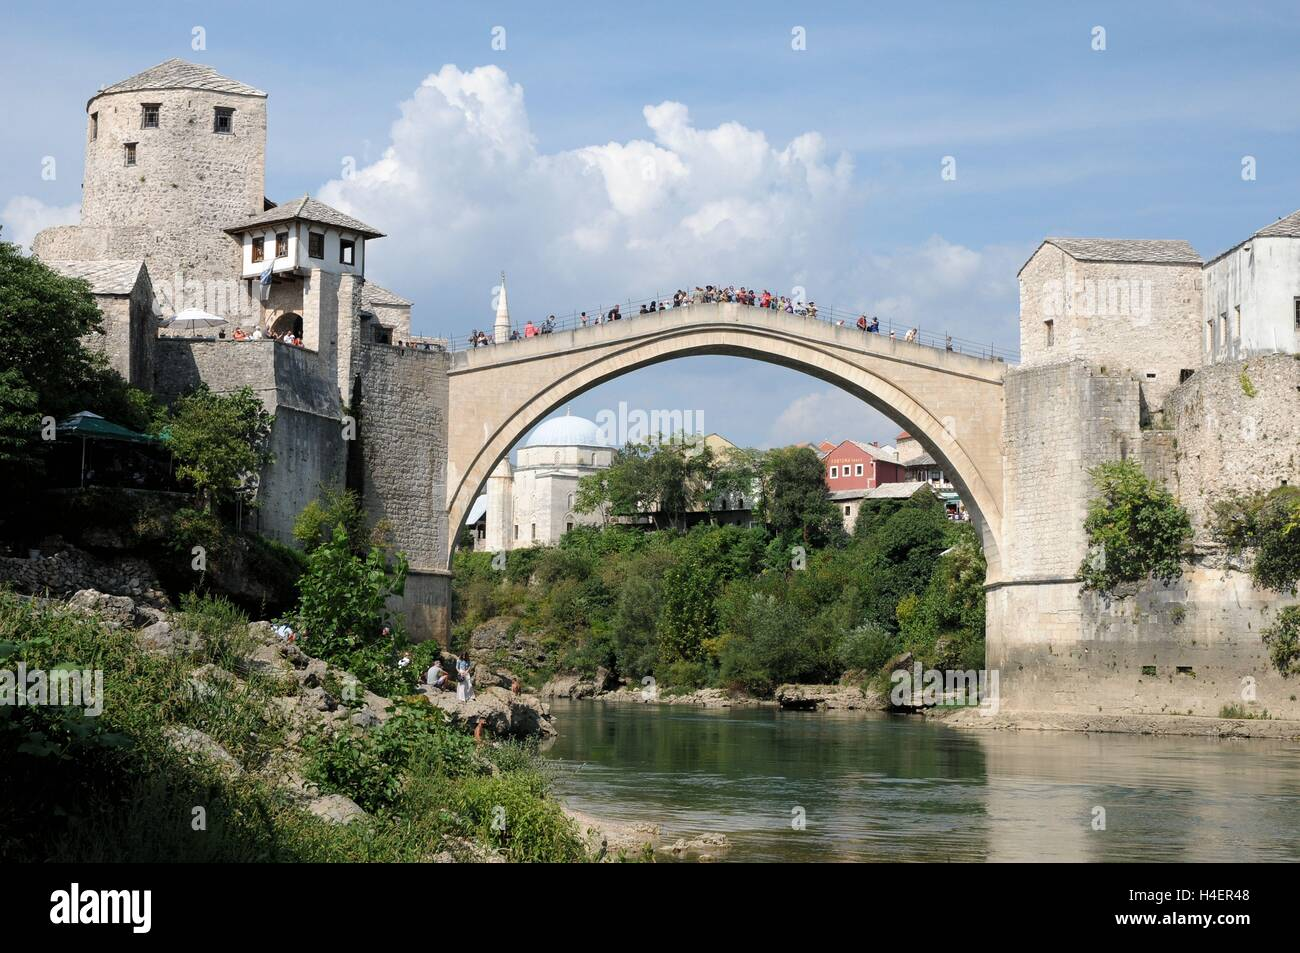 The Stari Most bridge, Mostar, Bosnia Herzegovina - Stock Image